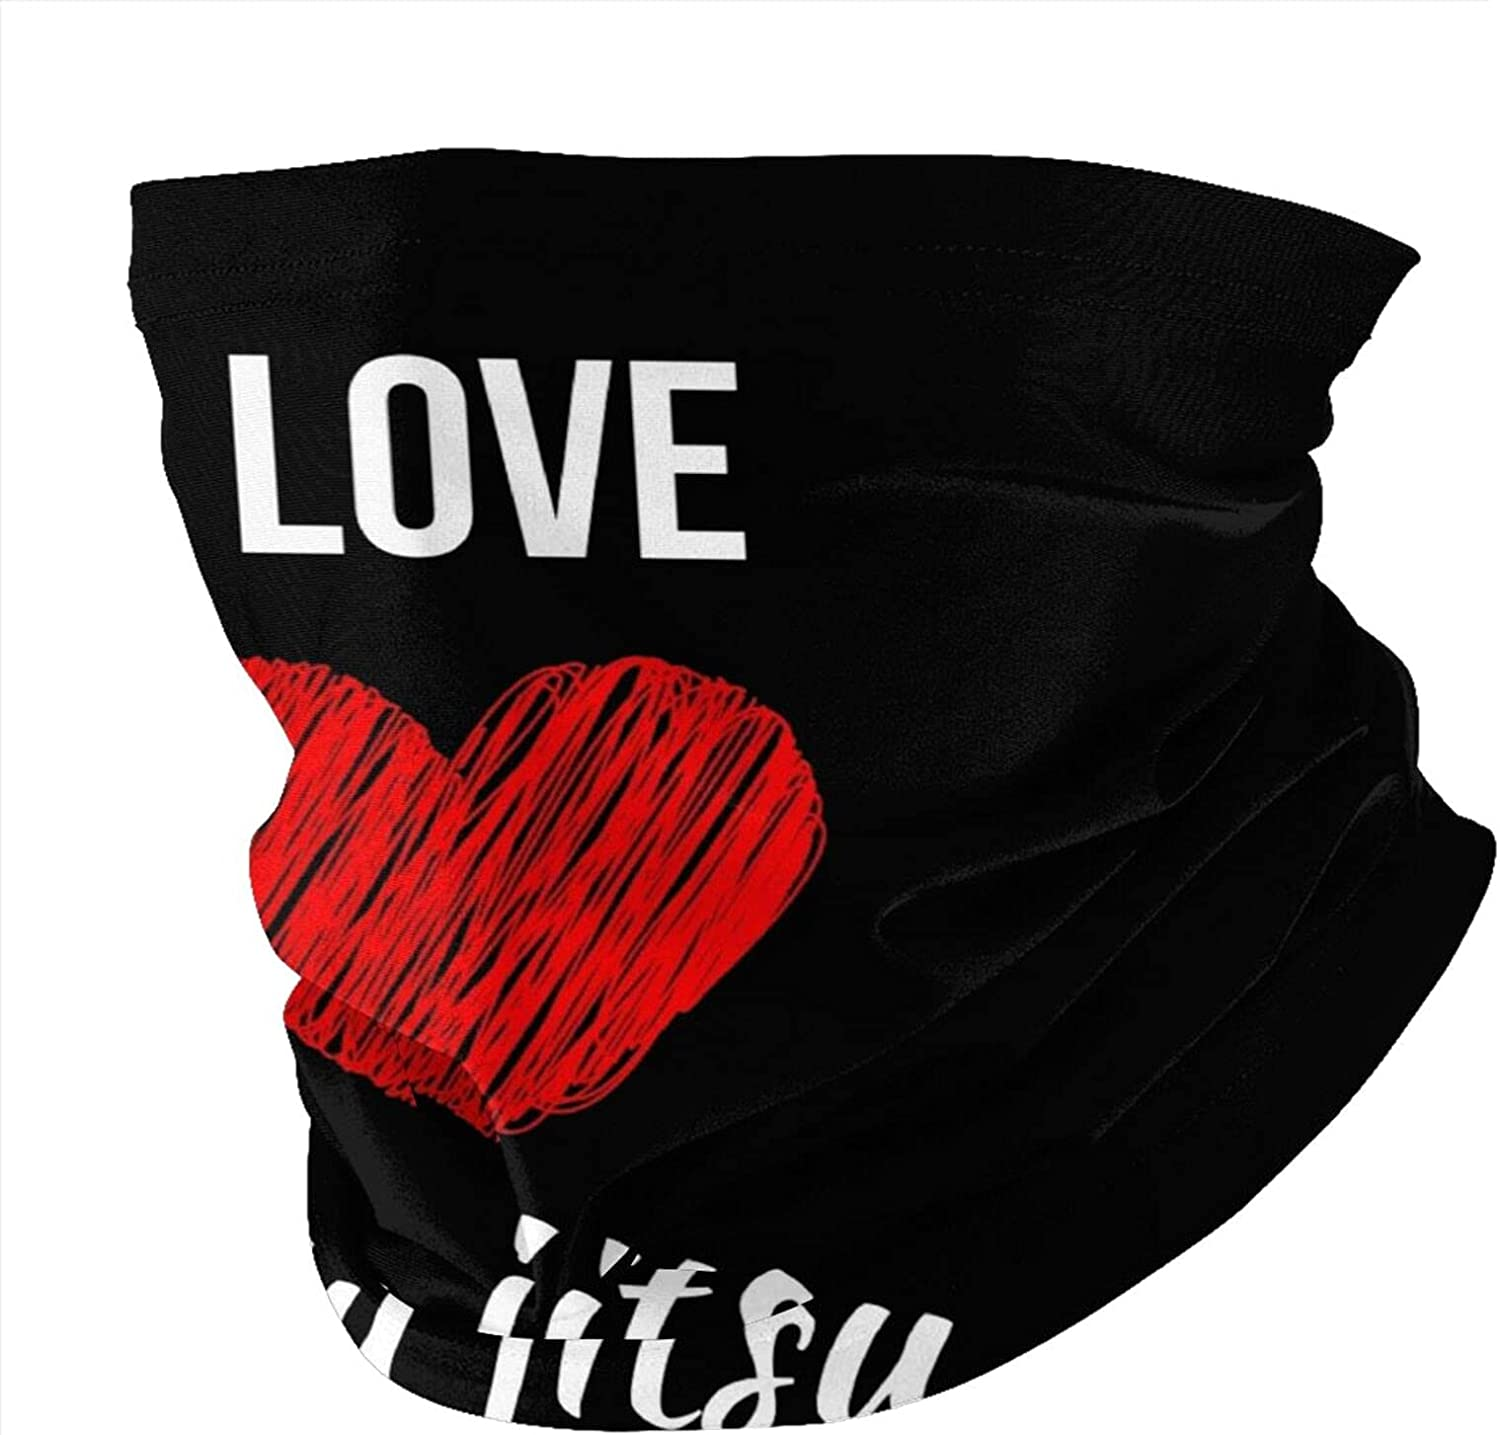 I Love Jiu Jitsu Round Neck Gaiter Bandnas Face Cover Uv Protection Prevent bask in Ice Scarf Headbands Perfect for Motorcycle Cycling Running Festival Raves Outdoors